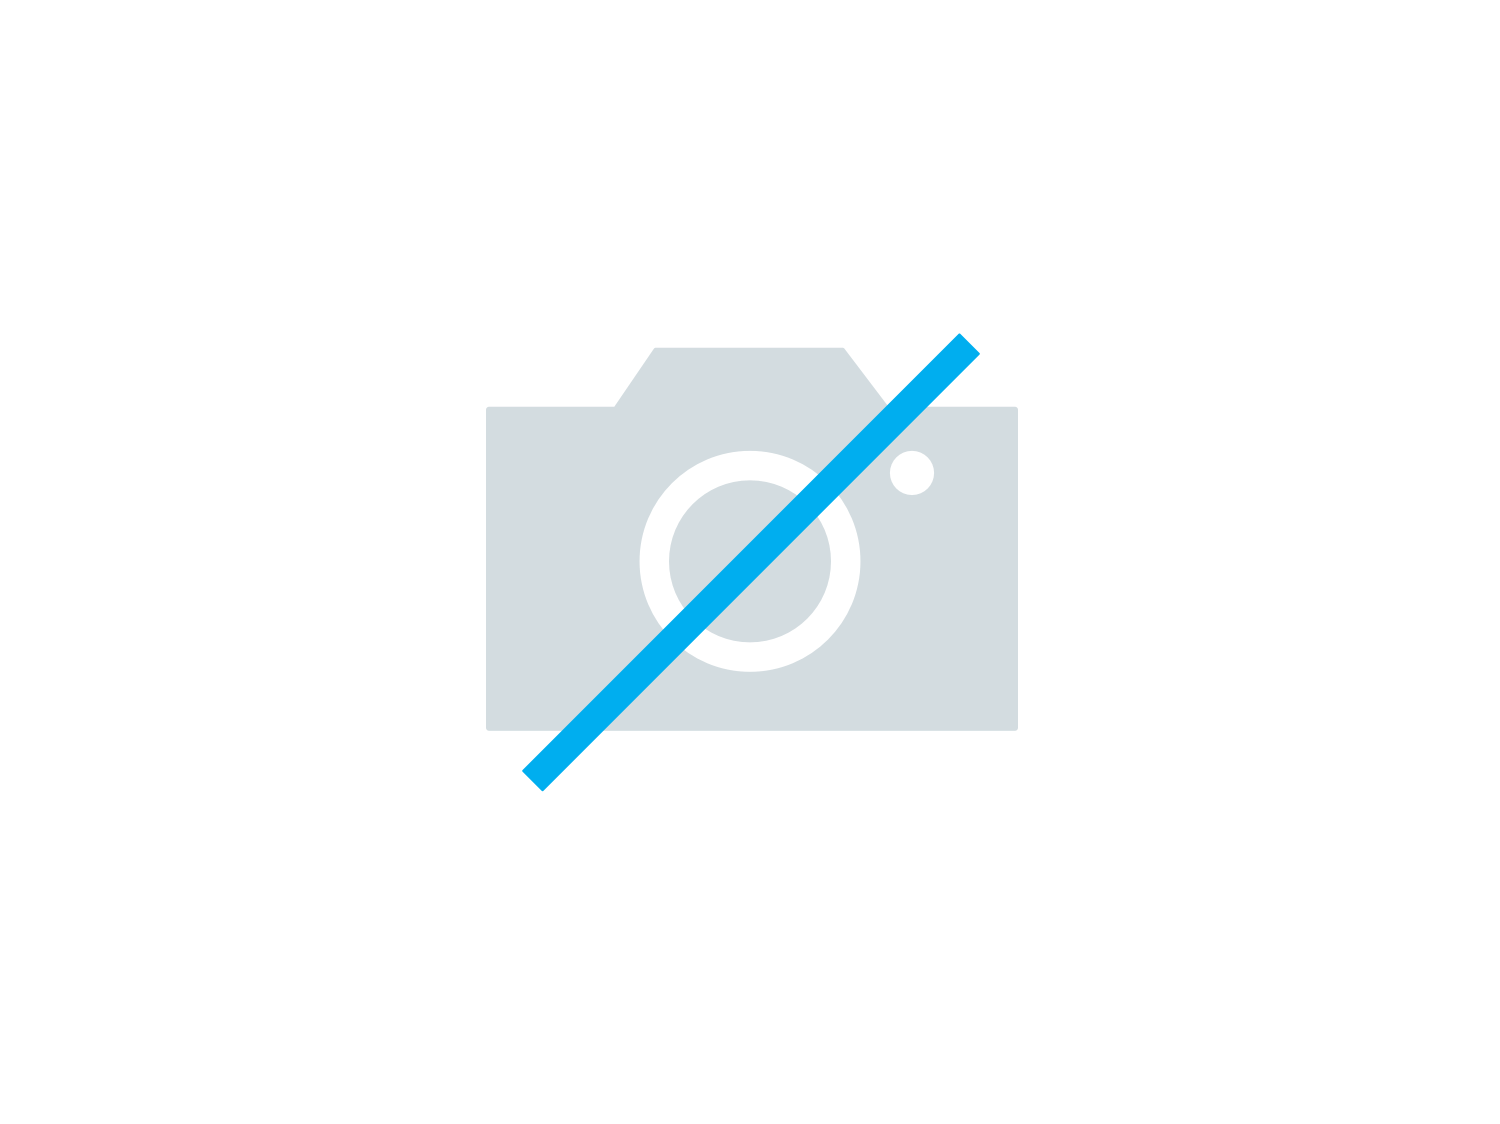 Fauteuil After hours club lederlook oranje